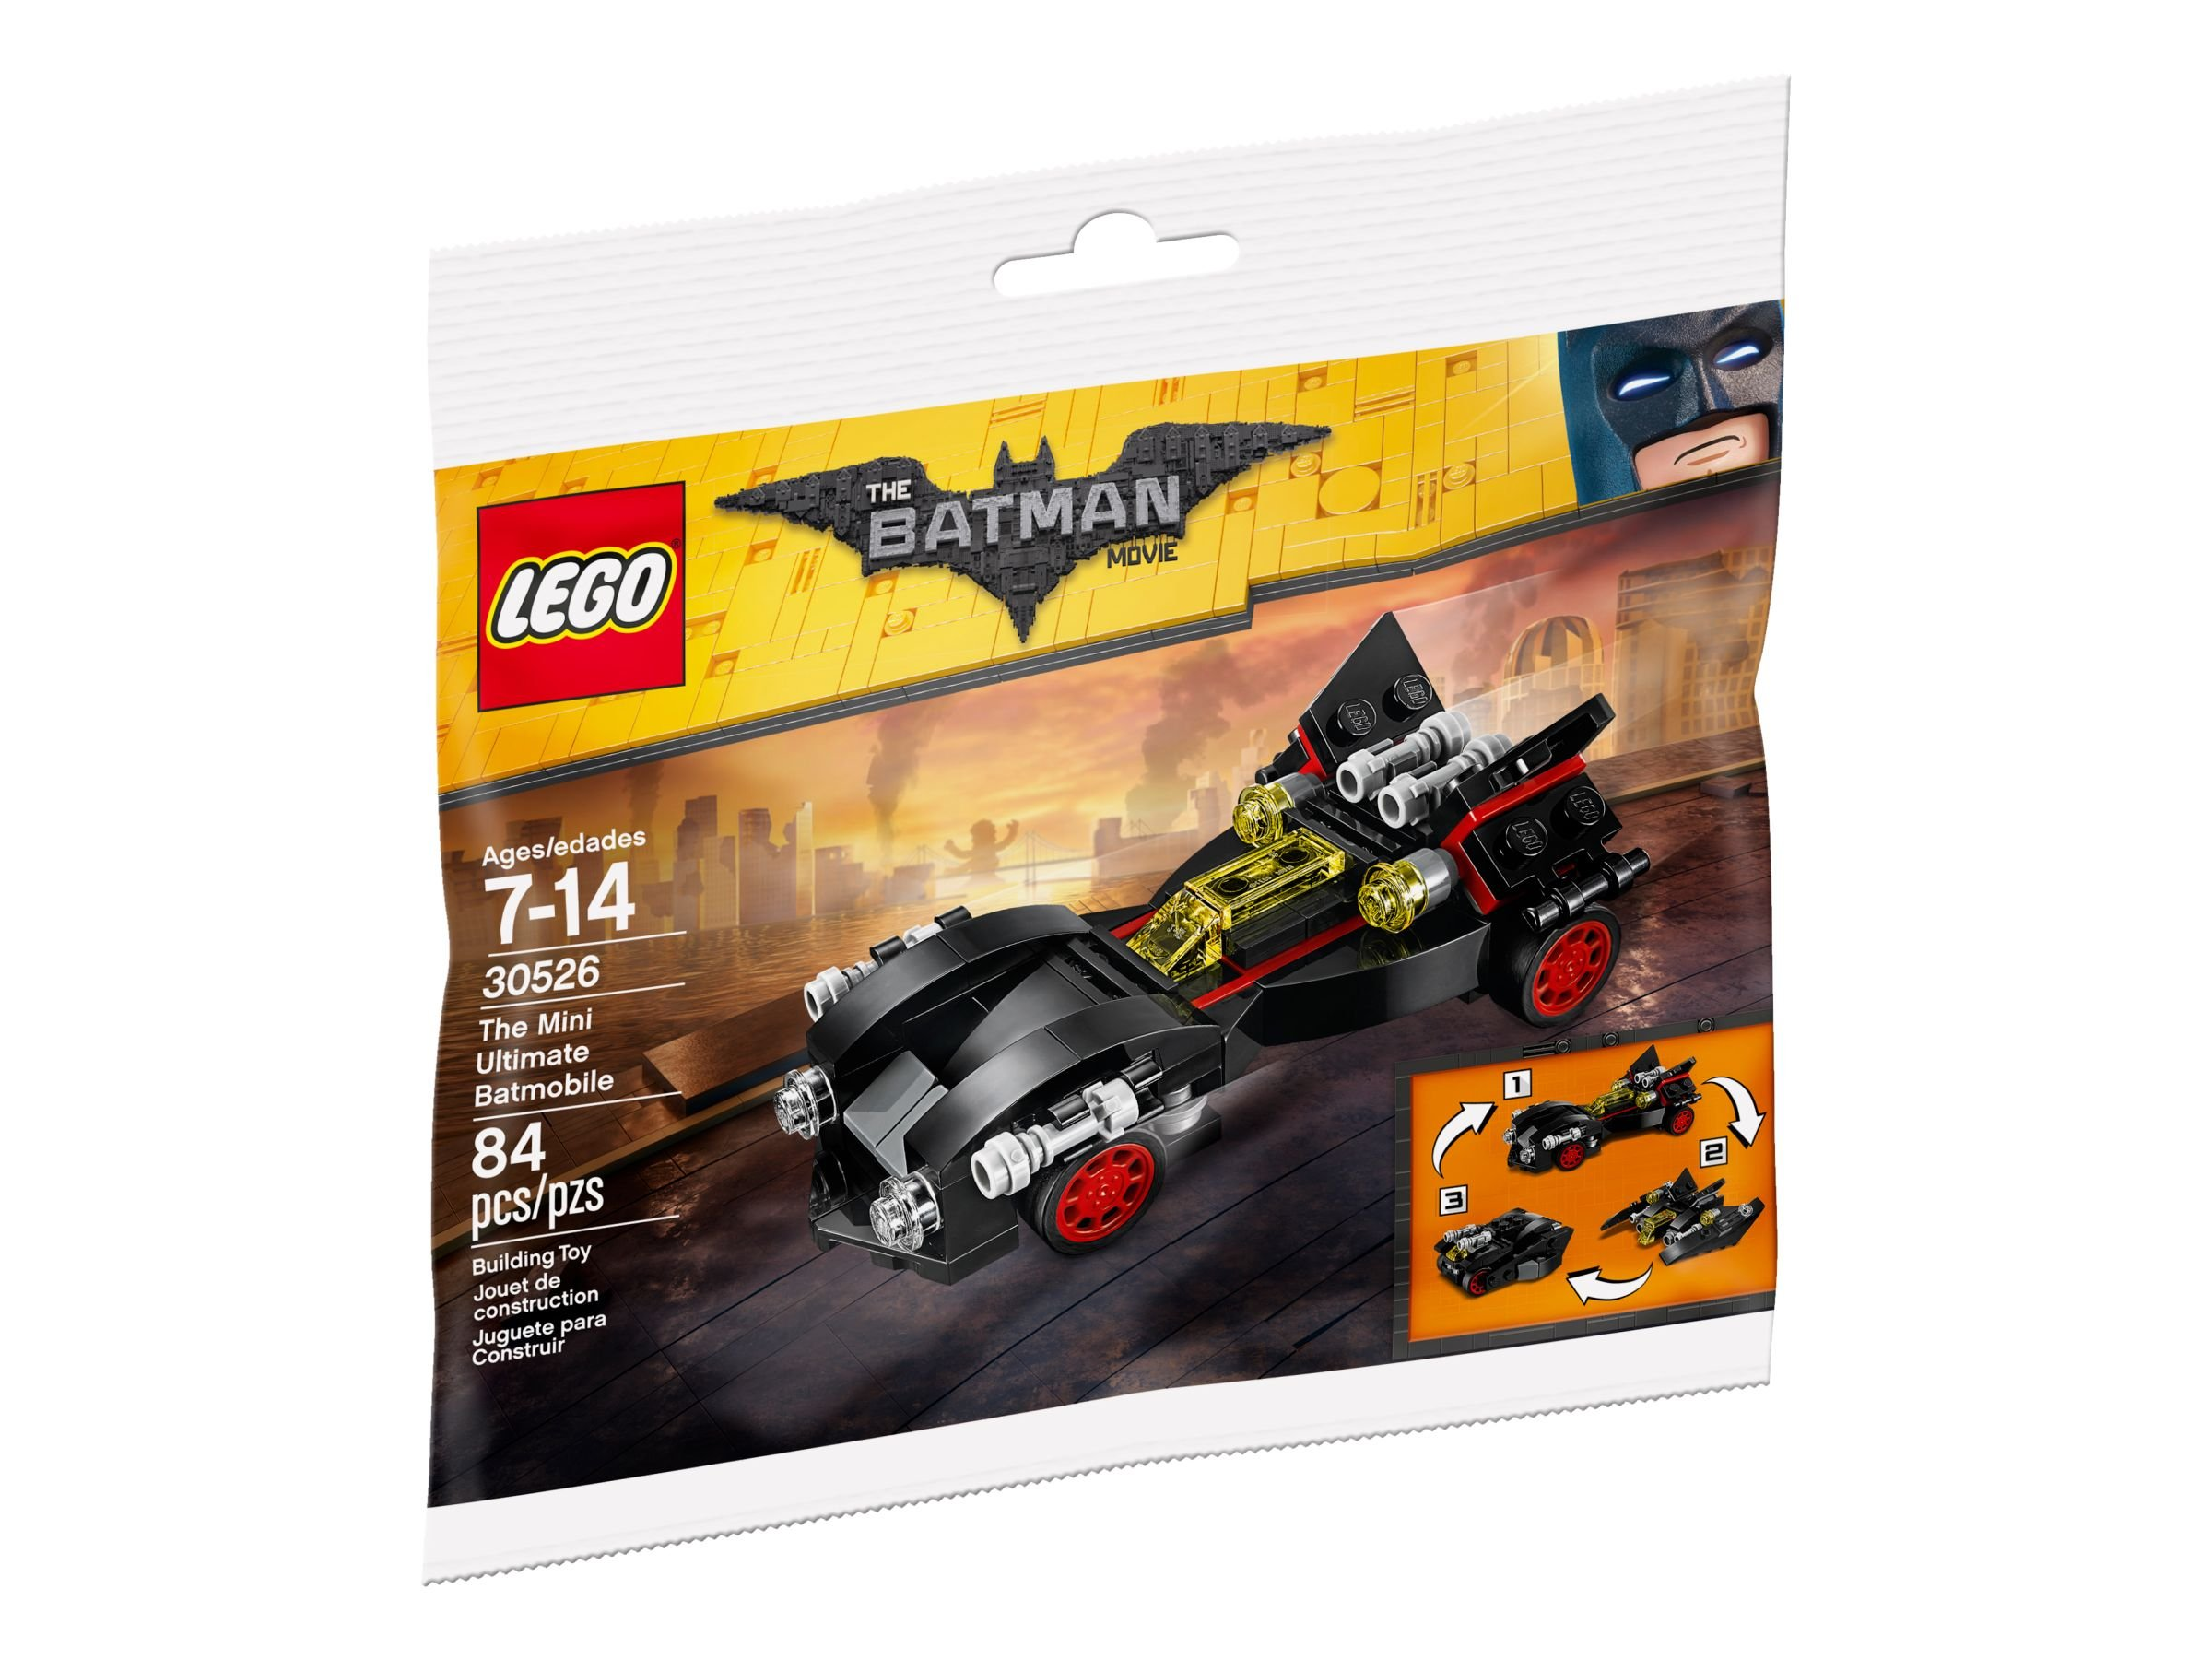 LEGO The LEGO Batman Movie 30526 LEGO 30526 The Mini Ultimate Batmobile Polybag LEGO_30526_alt1.jpg